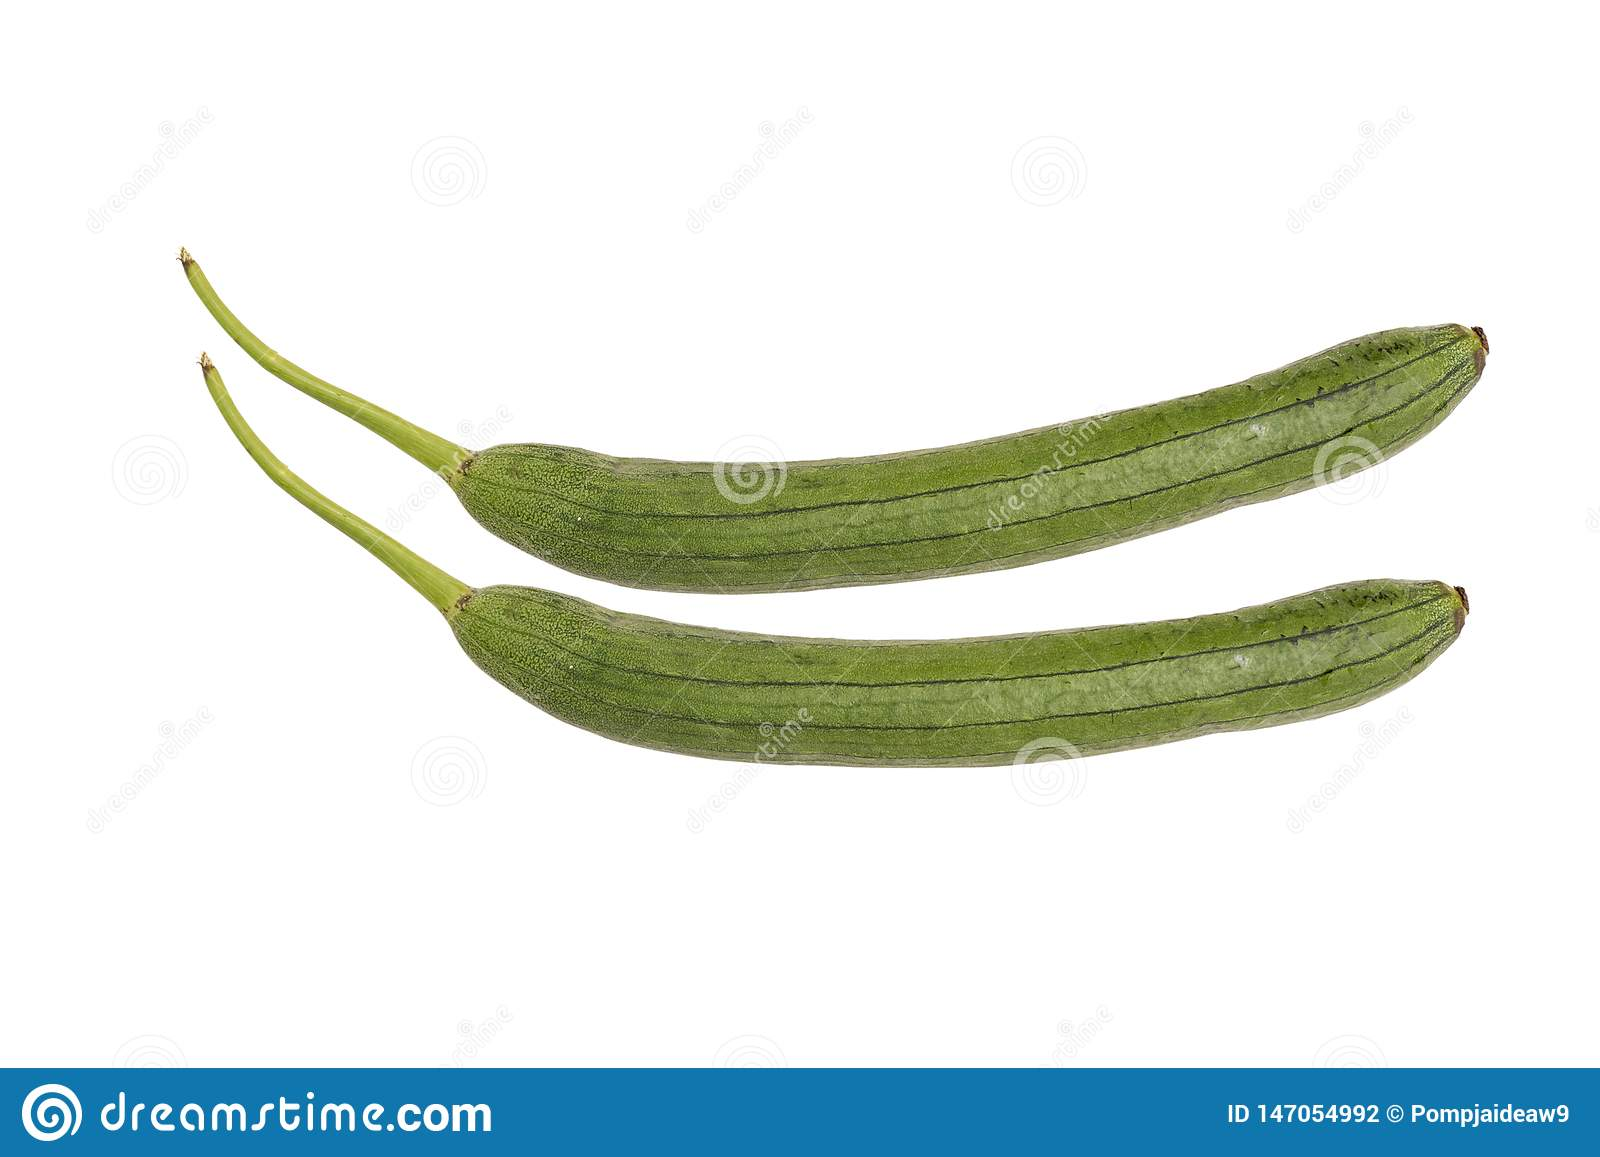 Green Zucchini isolated on white background. Japanese zucchini. Variety of marrow or summer squash, picked when small. Long and